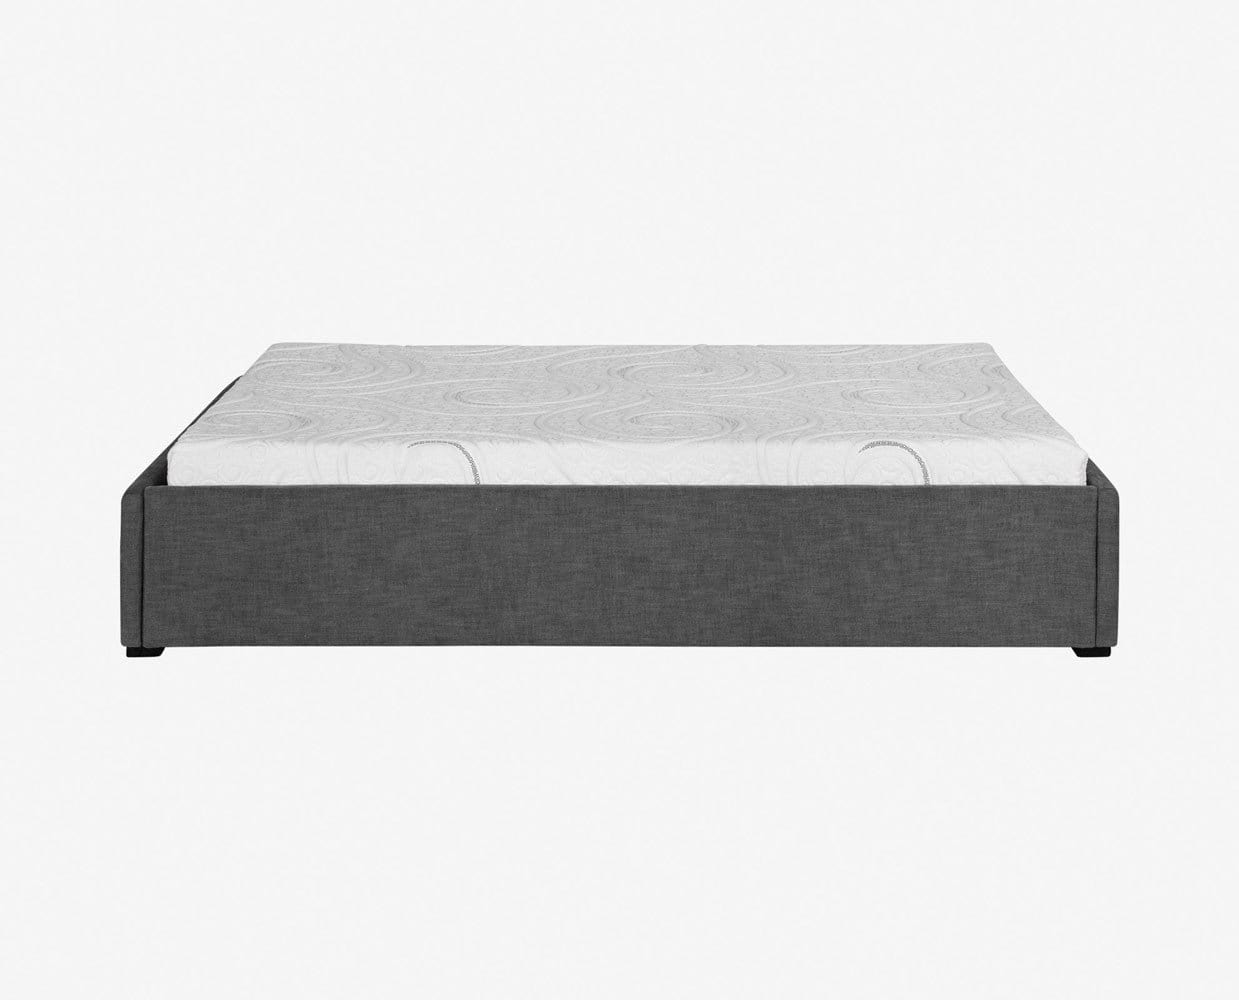 Sturdy minimalist moder Nordic inspired bed